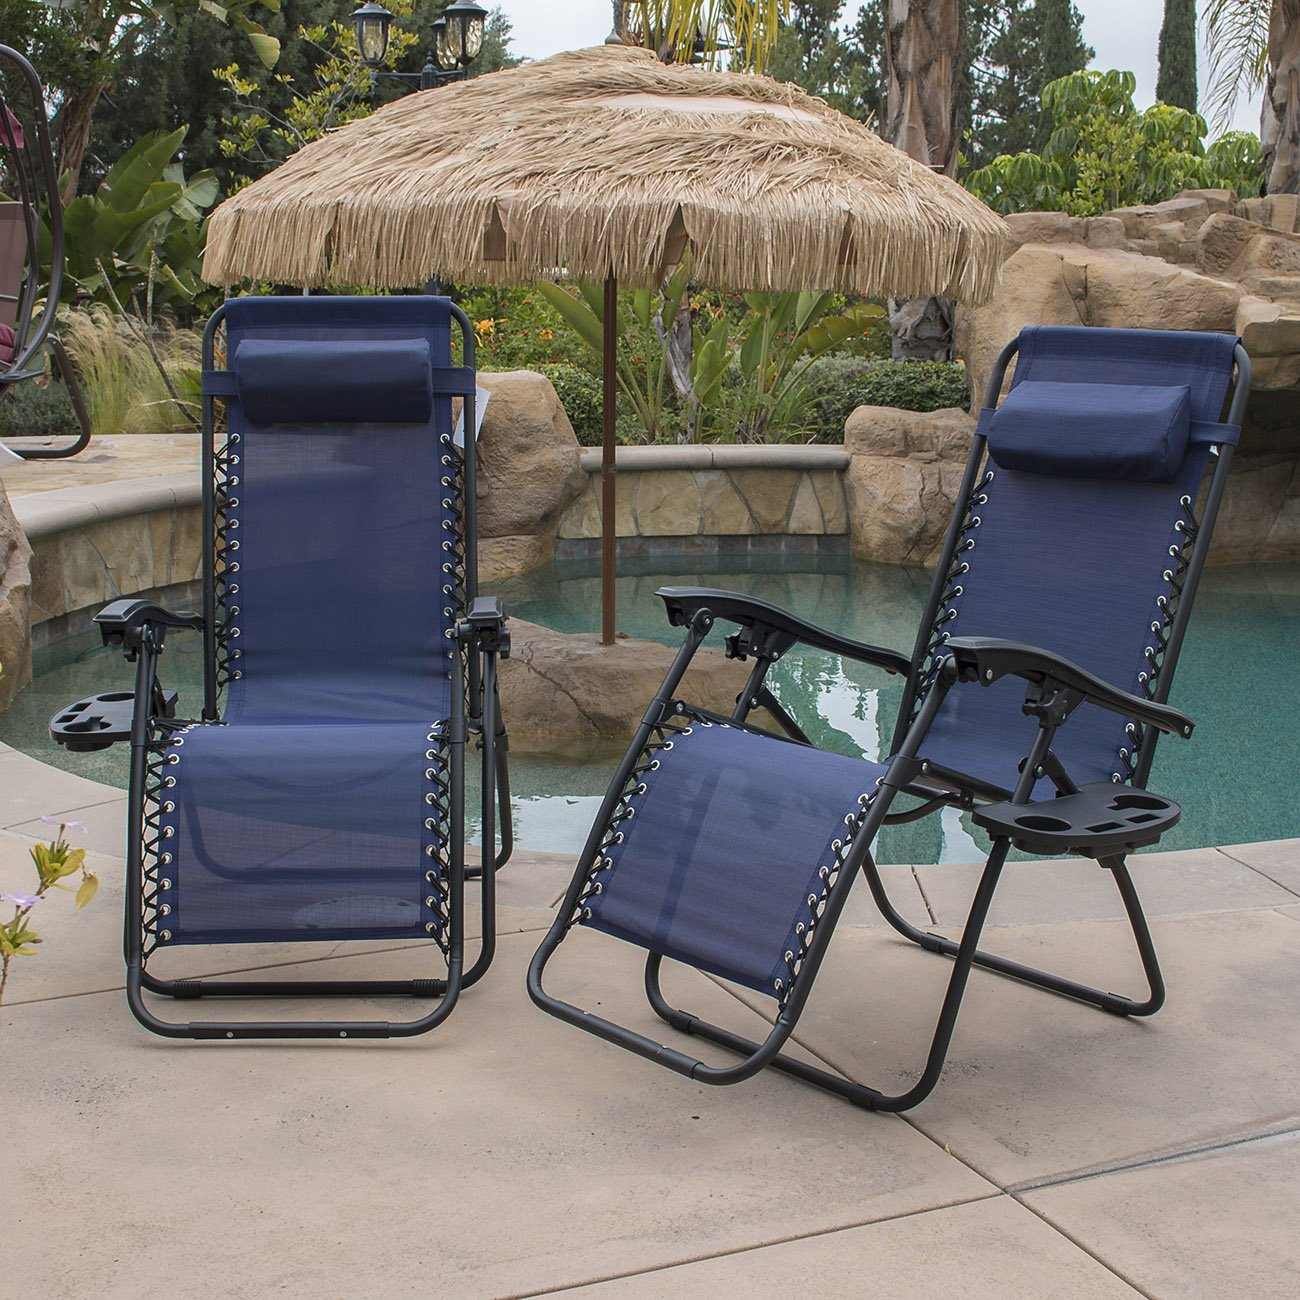 Amazon.com : Belleze Zero Gravity Chair Recliner Patio Pool Chair Cup  Holder, Utility Tray (2 PACK)   Navy Blue : Garden U0026 Outdoor